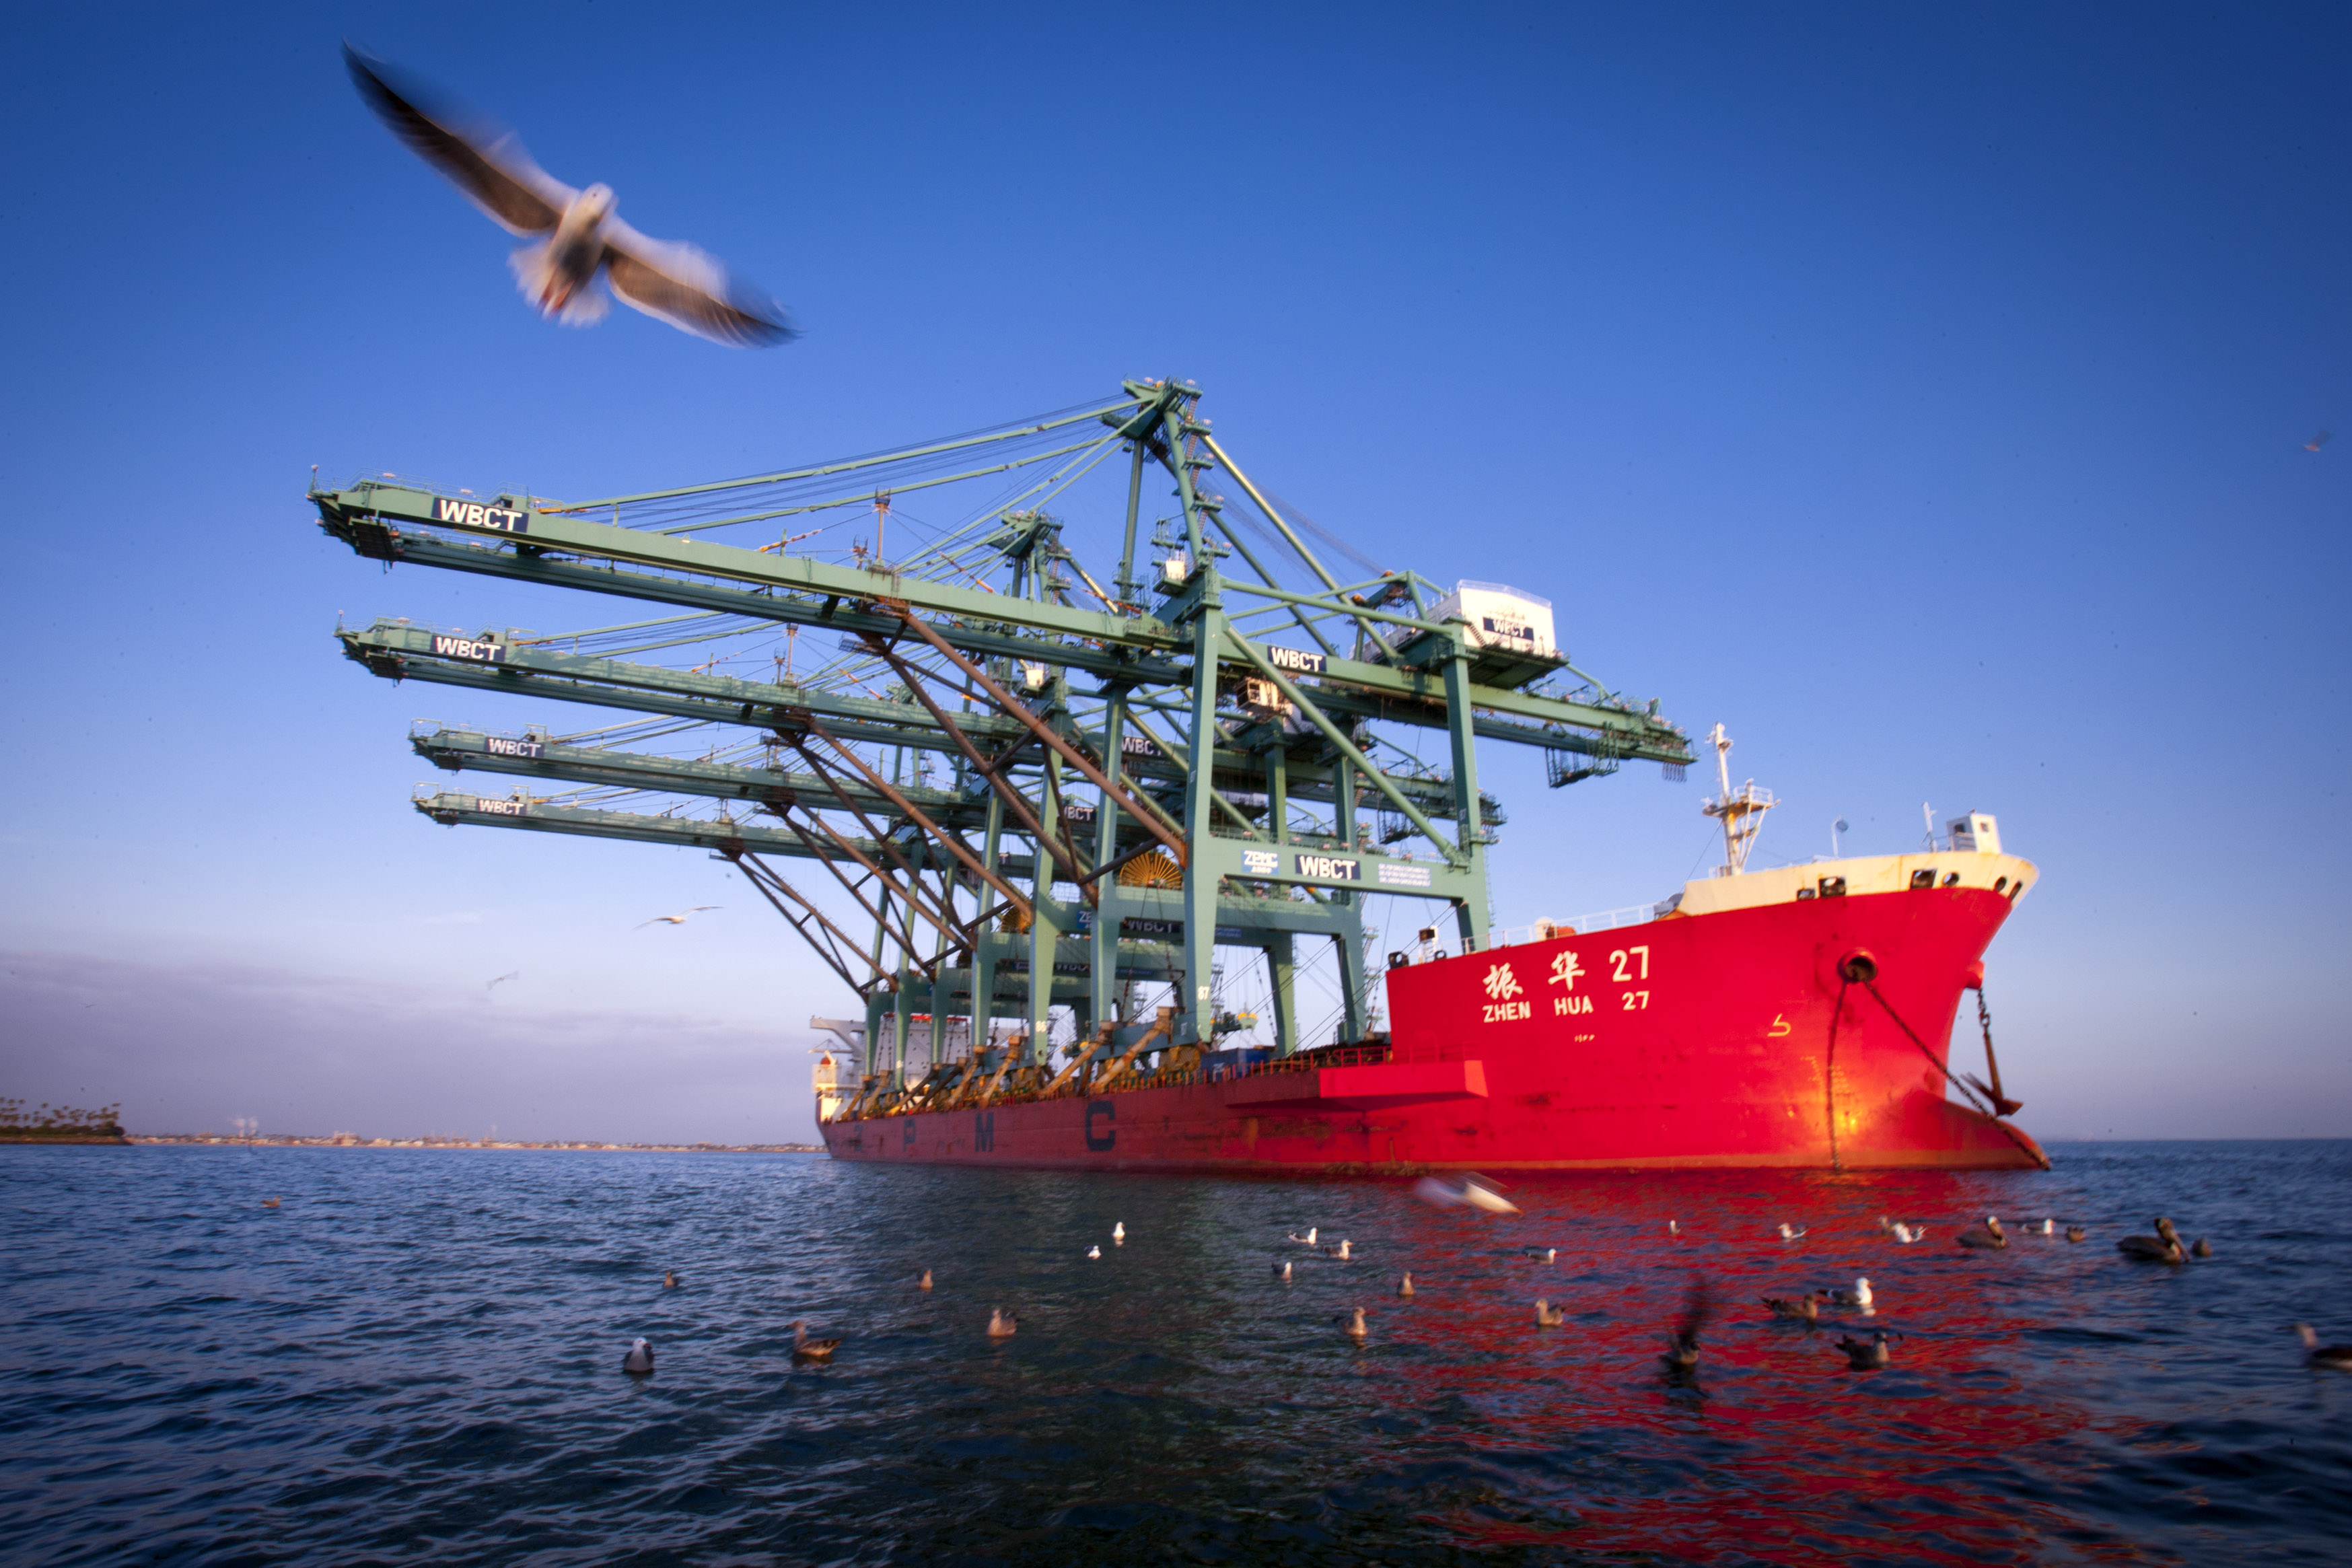 A ship carrying container gantry cranes manufactured by Shanghai Zhenhua Heavy Industry Co. Ltd. is seen in January 2011. Taiwan turned to the state-run mainland Chinese shipper to get vital materials to a $100 million port it is building in the disputed Spratly archipelago in the South China Sea. | BLOOMBERG